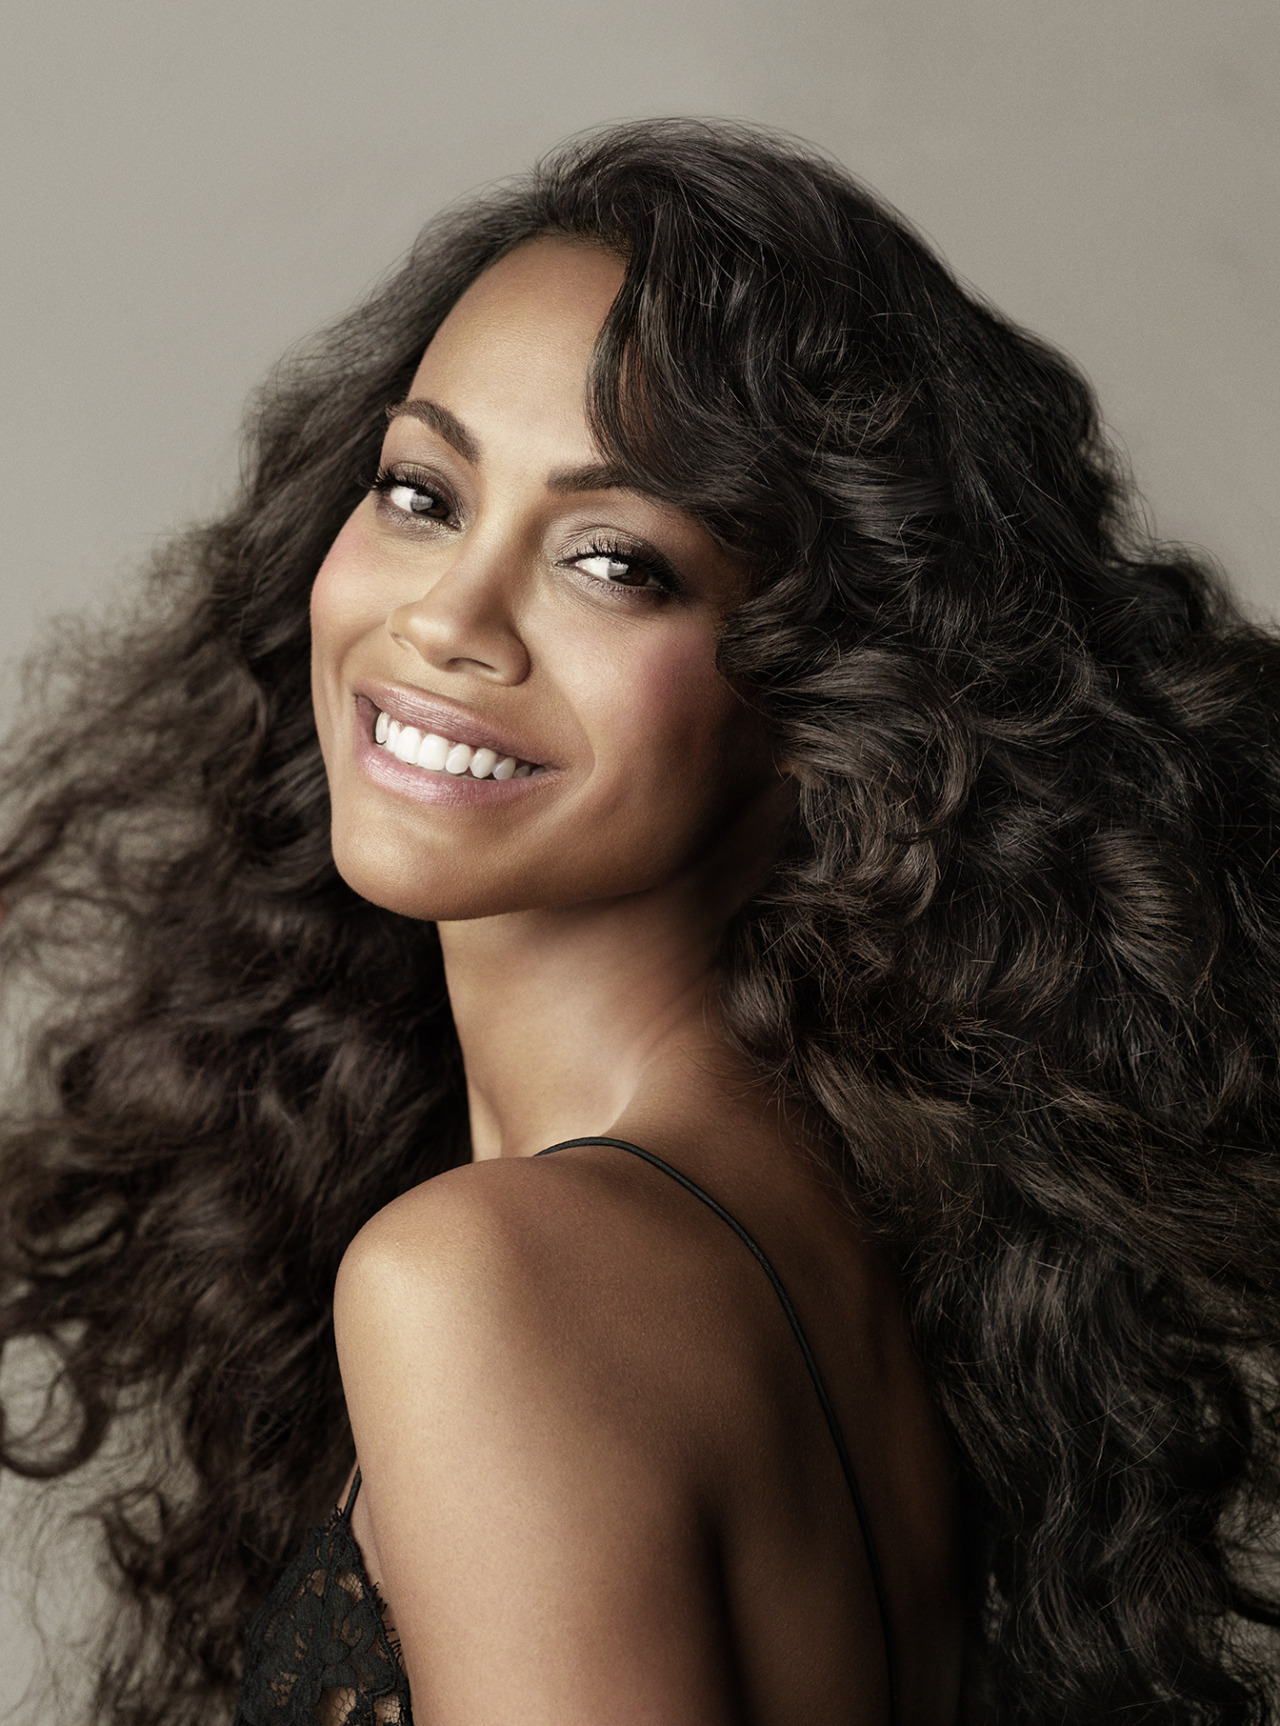 guestfromthefuture:  Zoe Saldana – Tom Munro Photoshoot for Allure (June 2013)  Click on the picture for the full-size view.